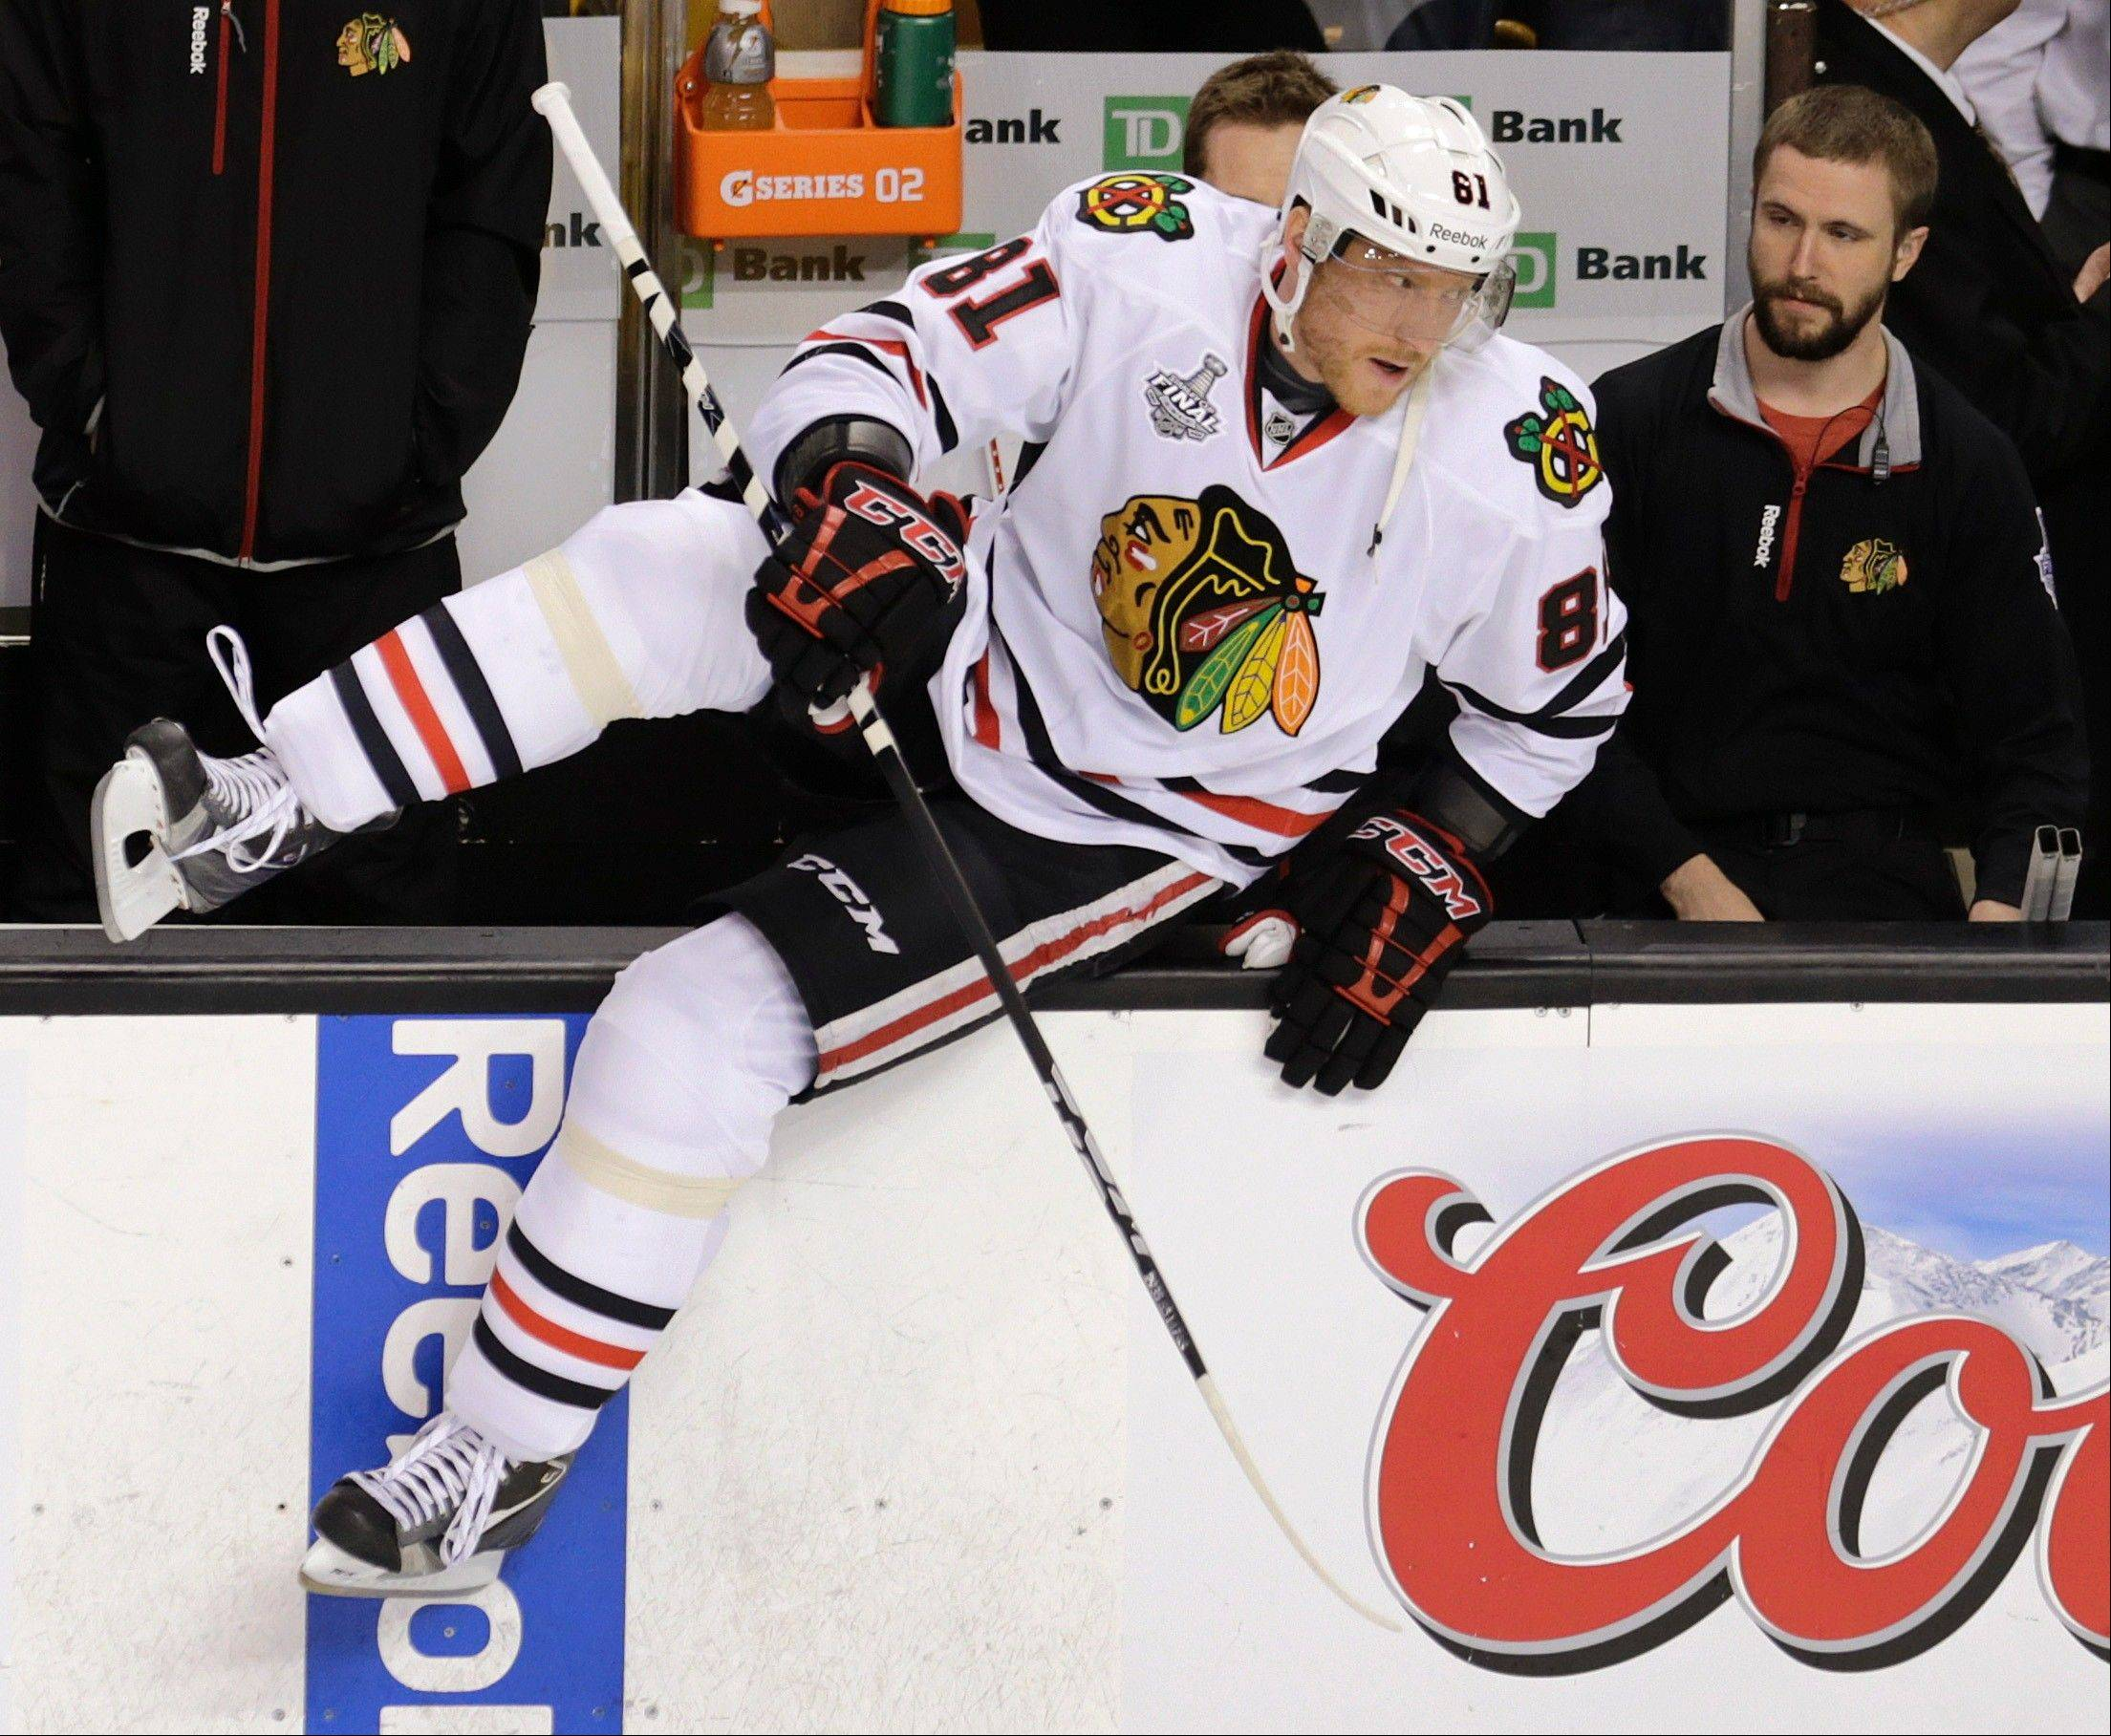 The health of forward Marian Hossa is one of the things to watch as the Blackhawks opening training camp this week.